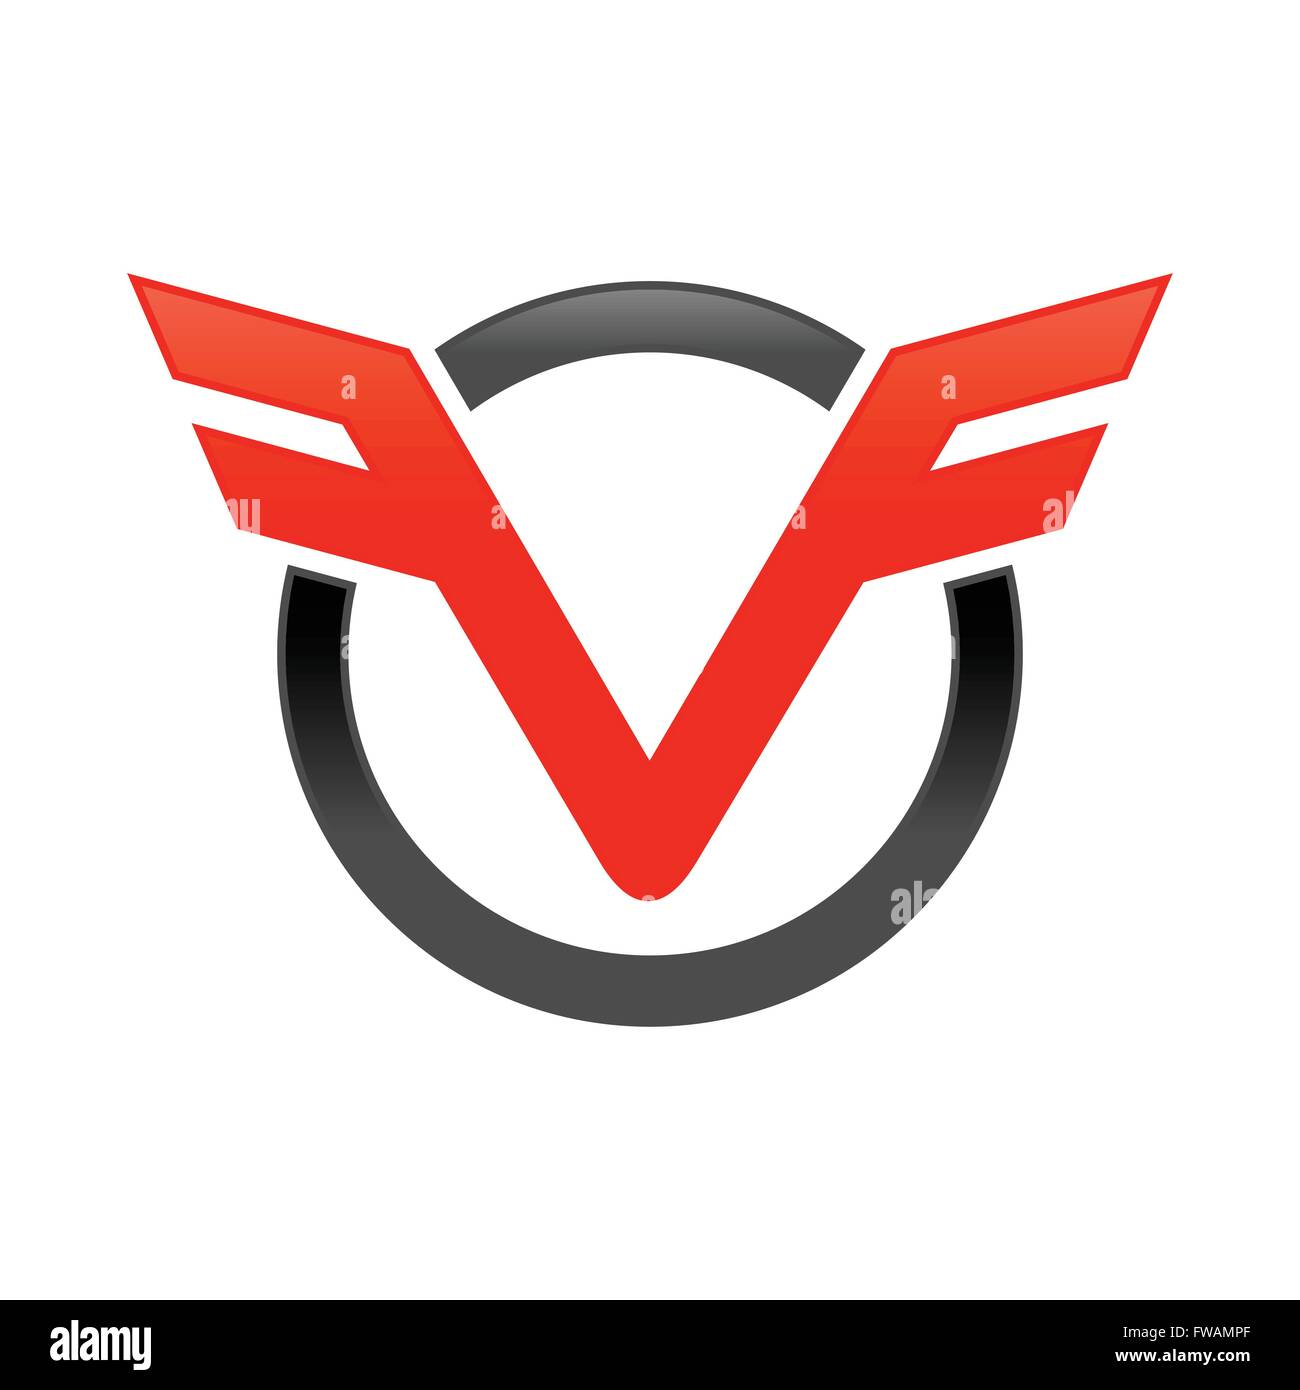 VF Initials Aviation Circle Mark Emblem - Stock Vector